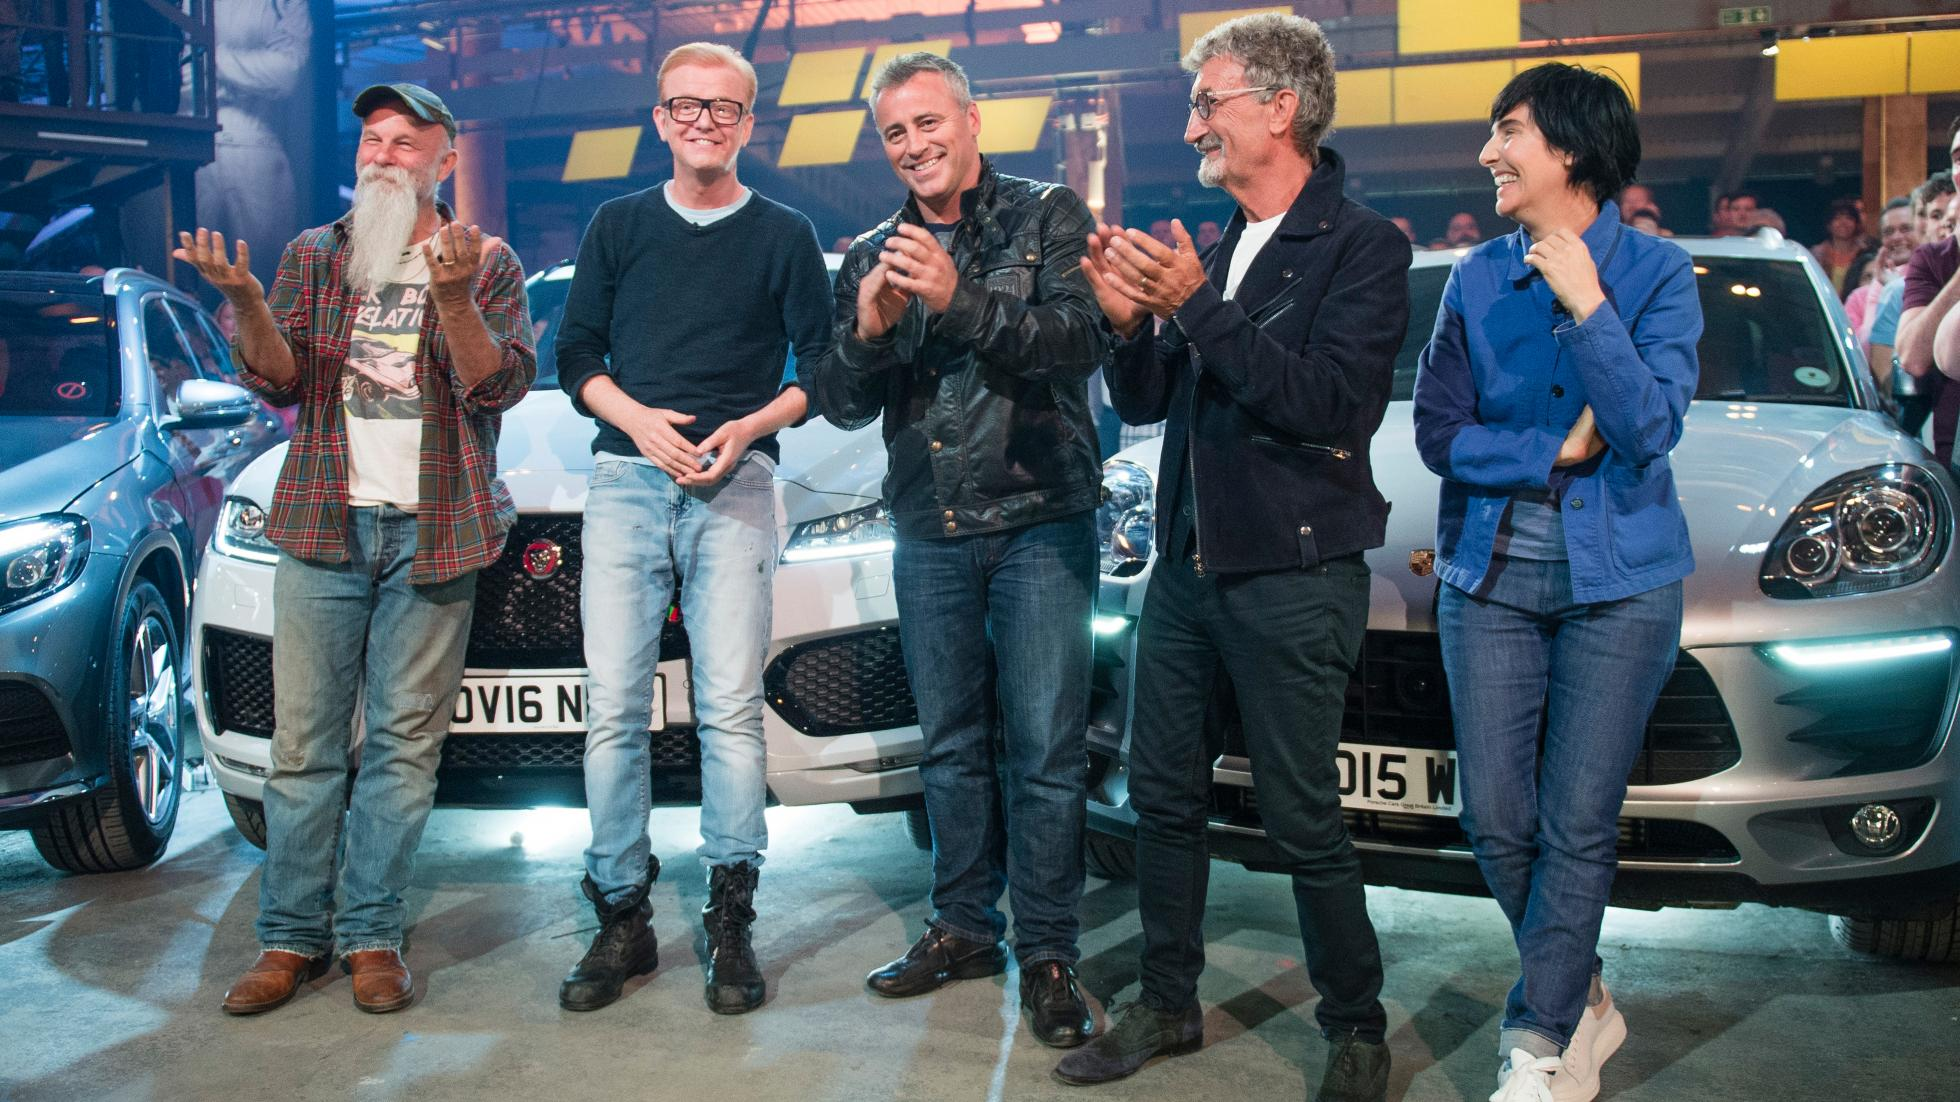 New Top Gear Season 23 Off To A Bad Start Chris Evans